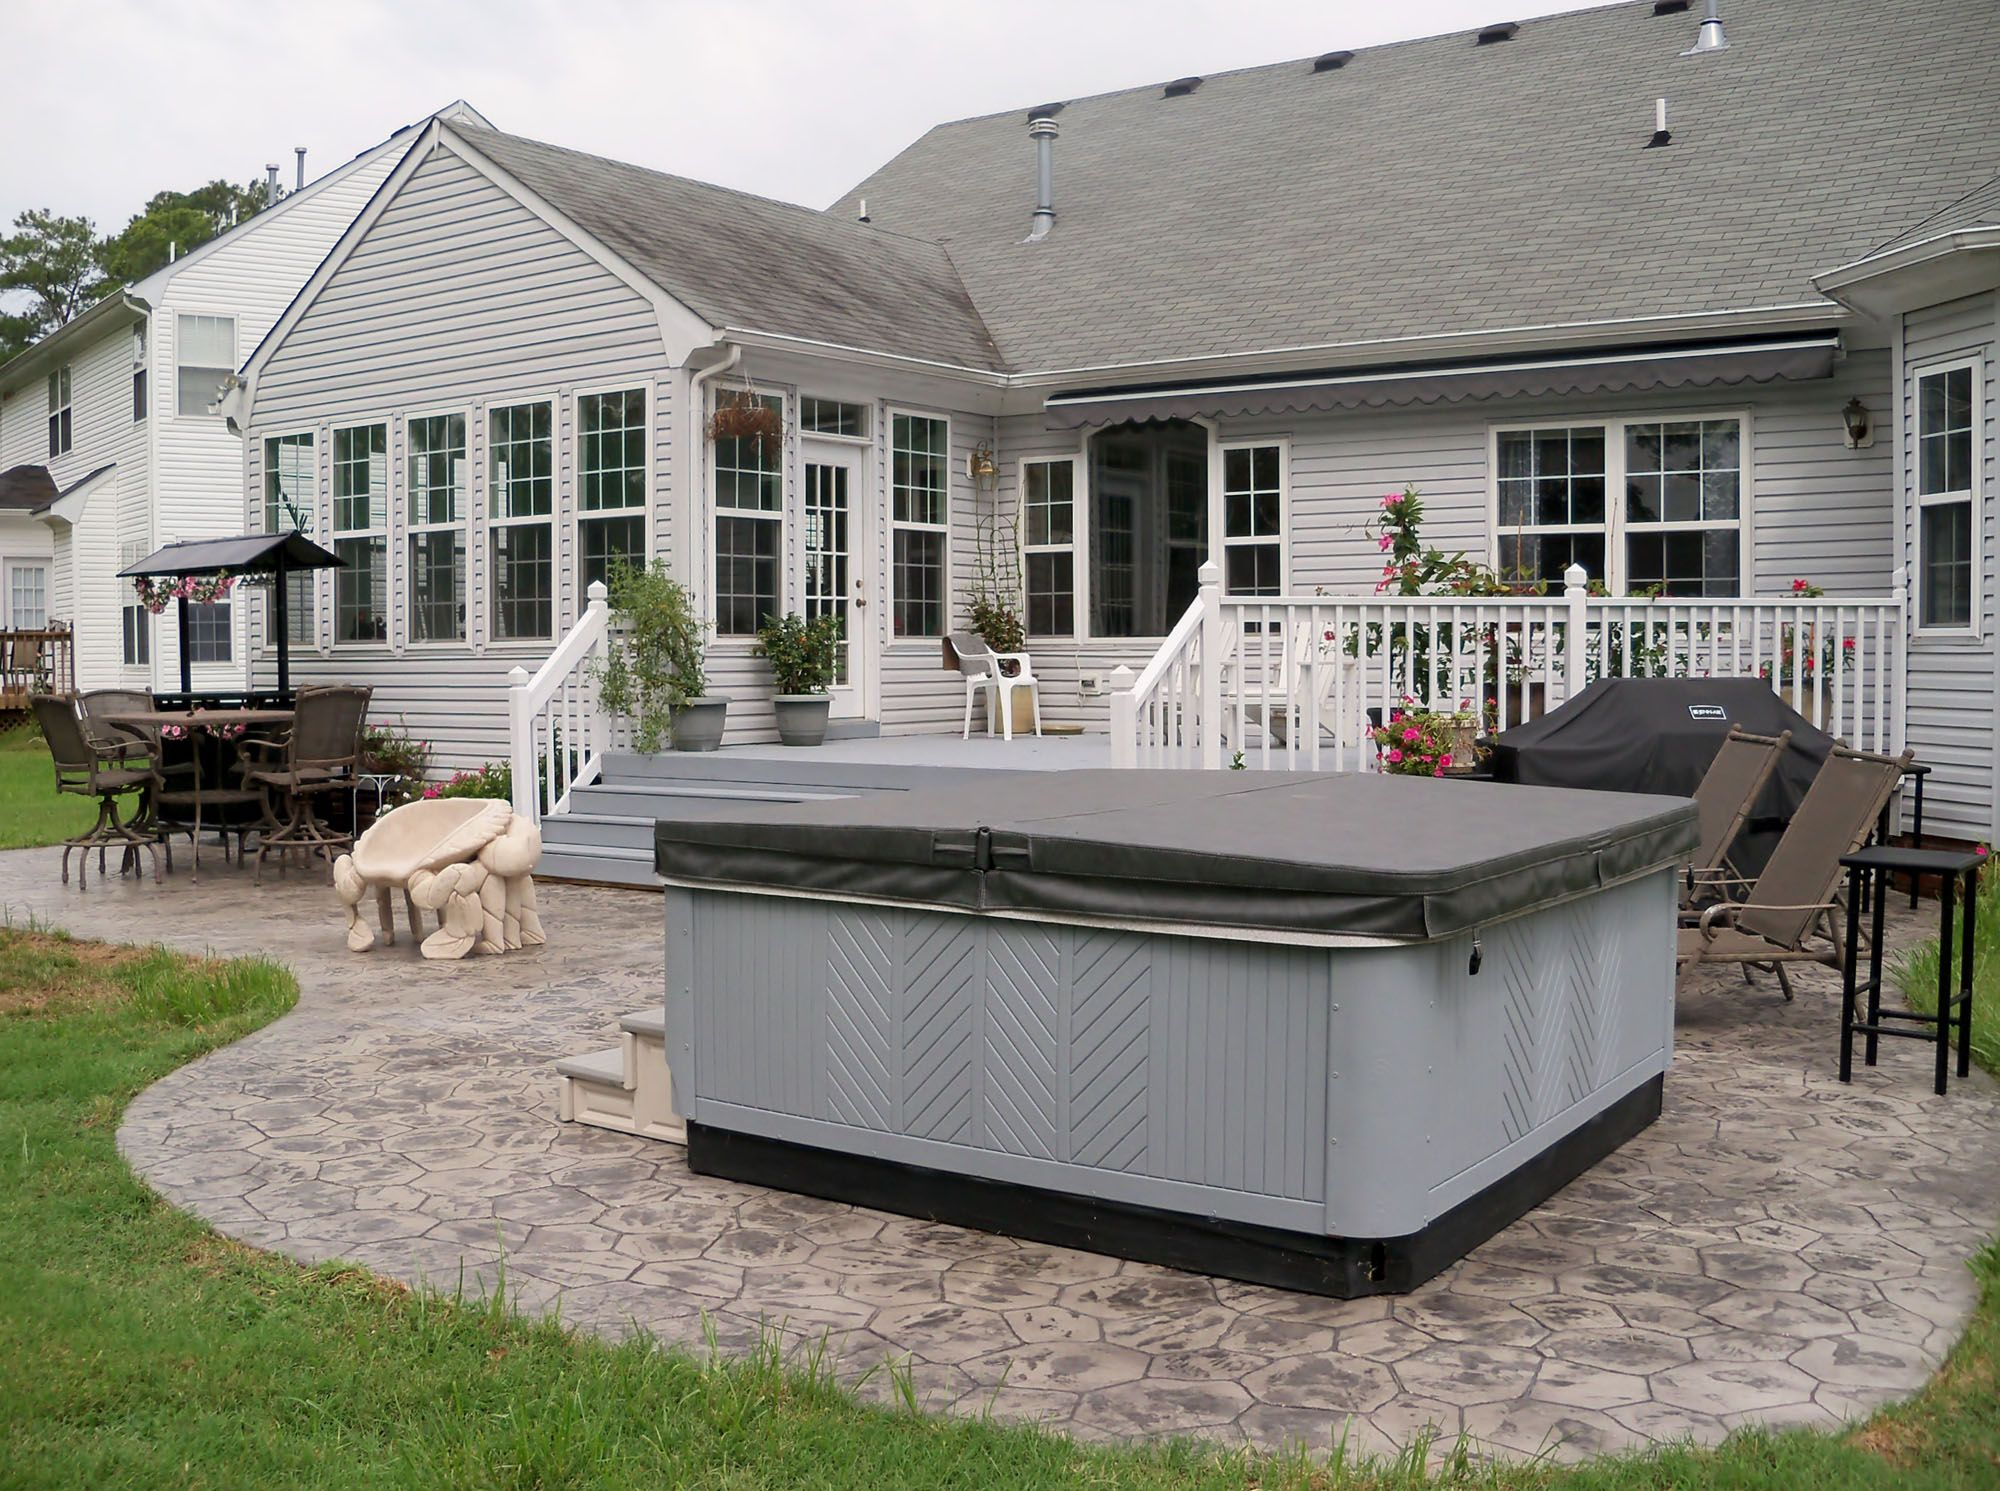 Patio ideas with hot tub - Stamped Concrete Patio And Hot Tub